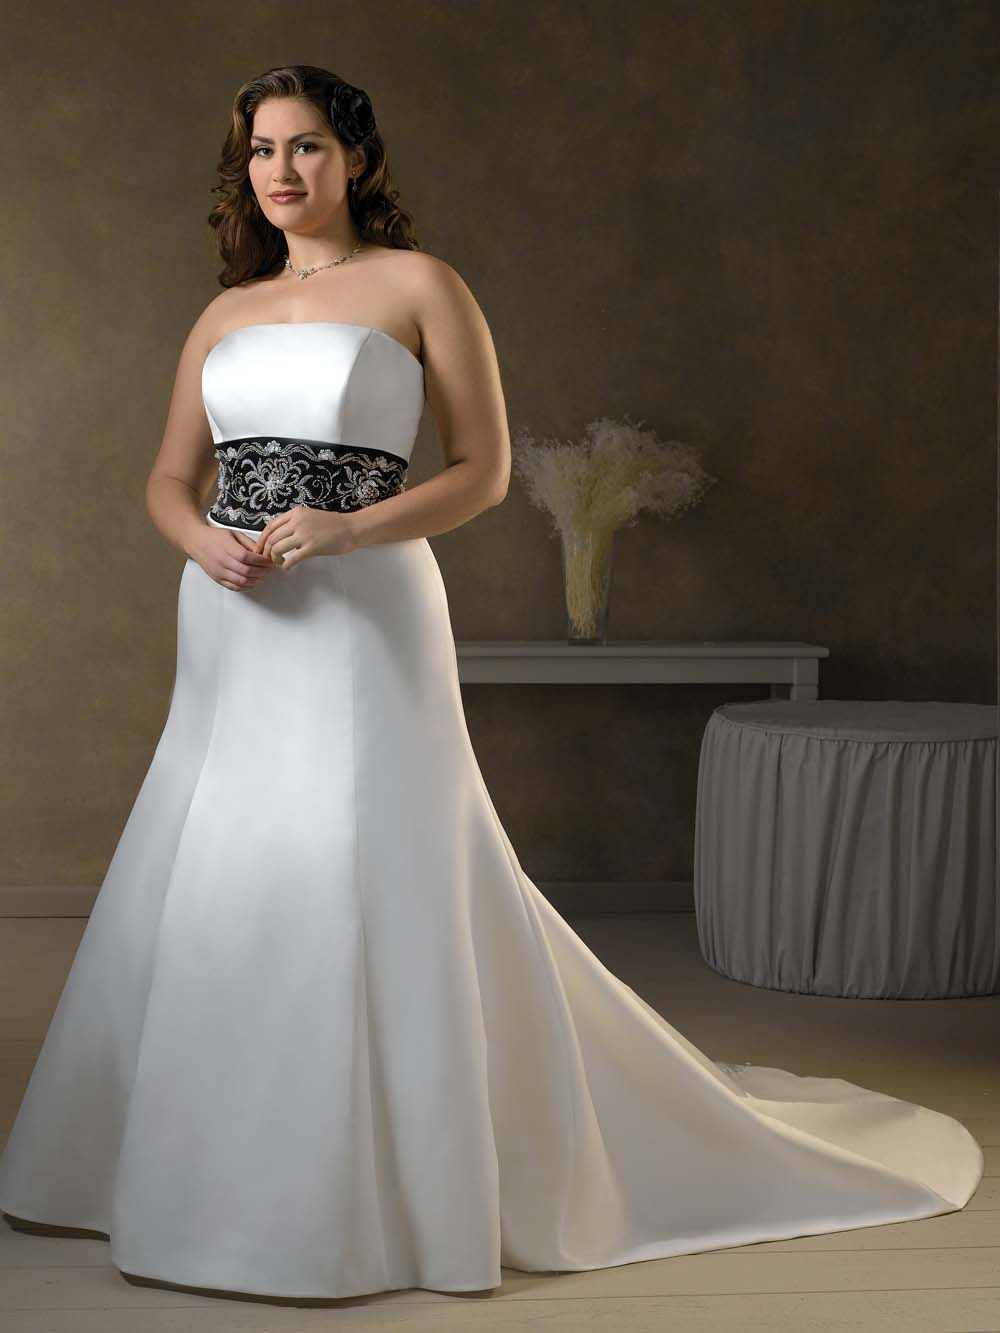 plus sized wedding dresses wedding dresses for second time brides plus size best plus size wedding